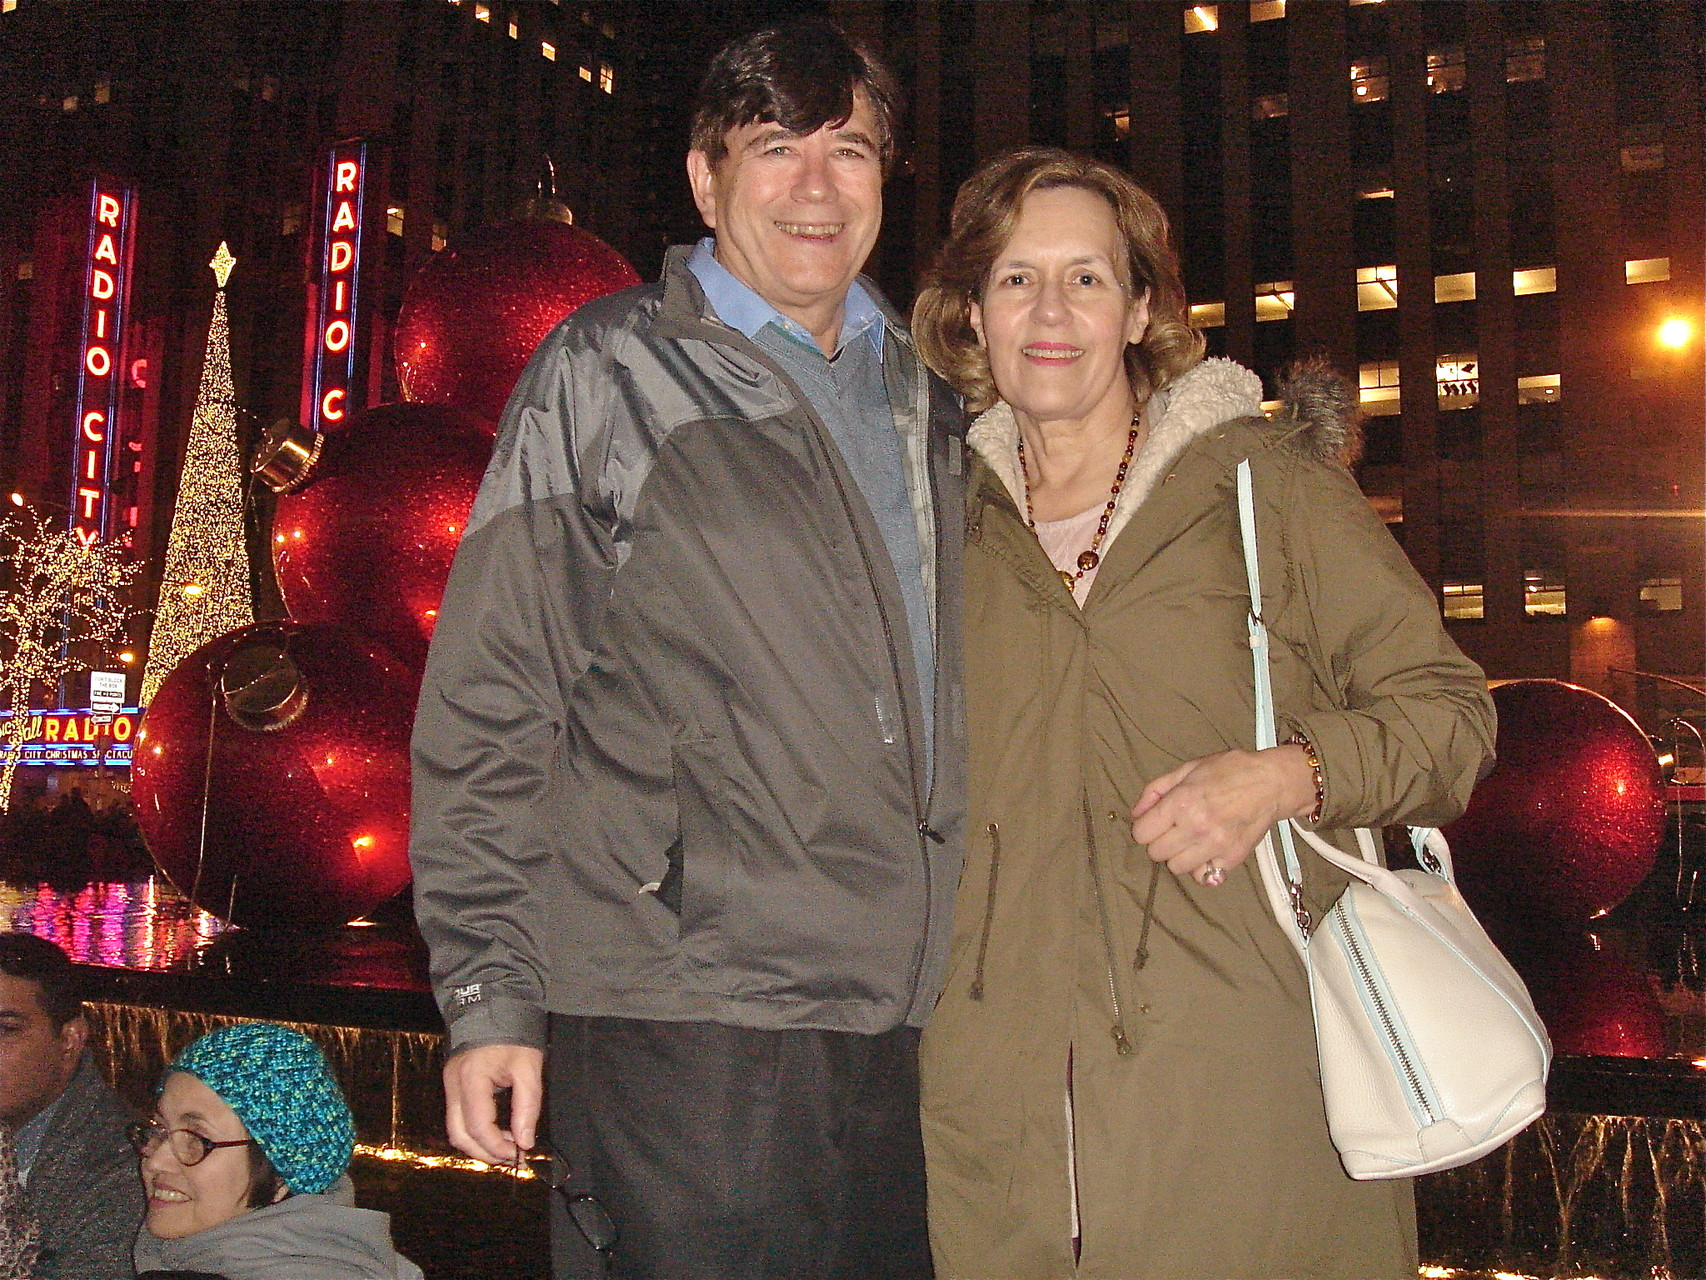 John & Lorraine on 6th Ave.